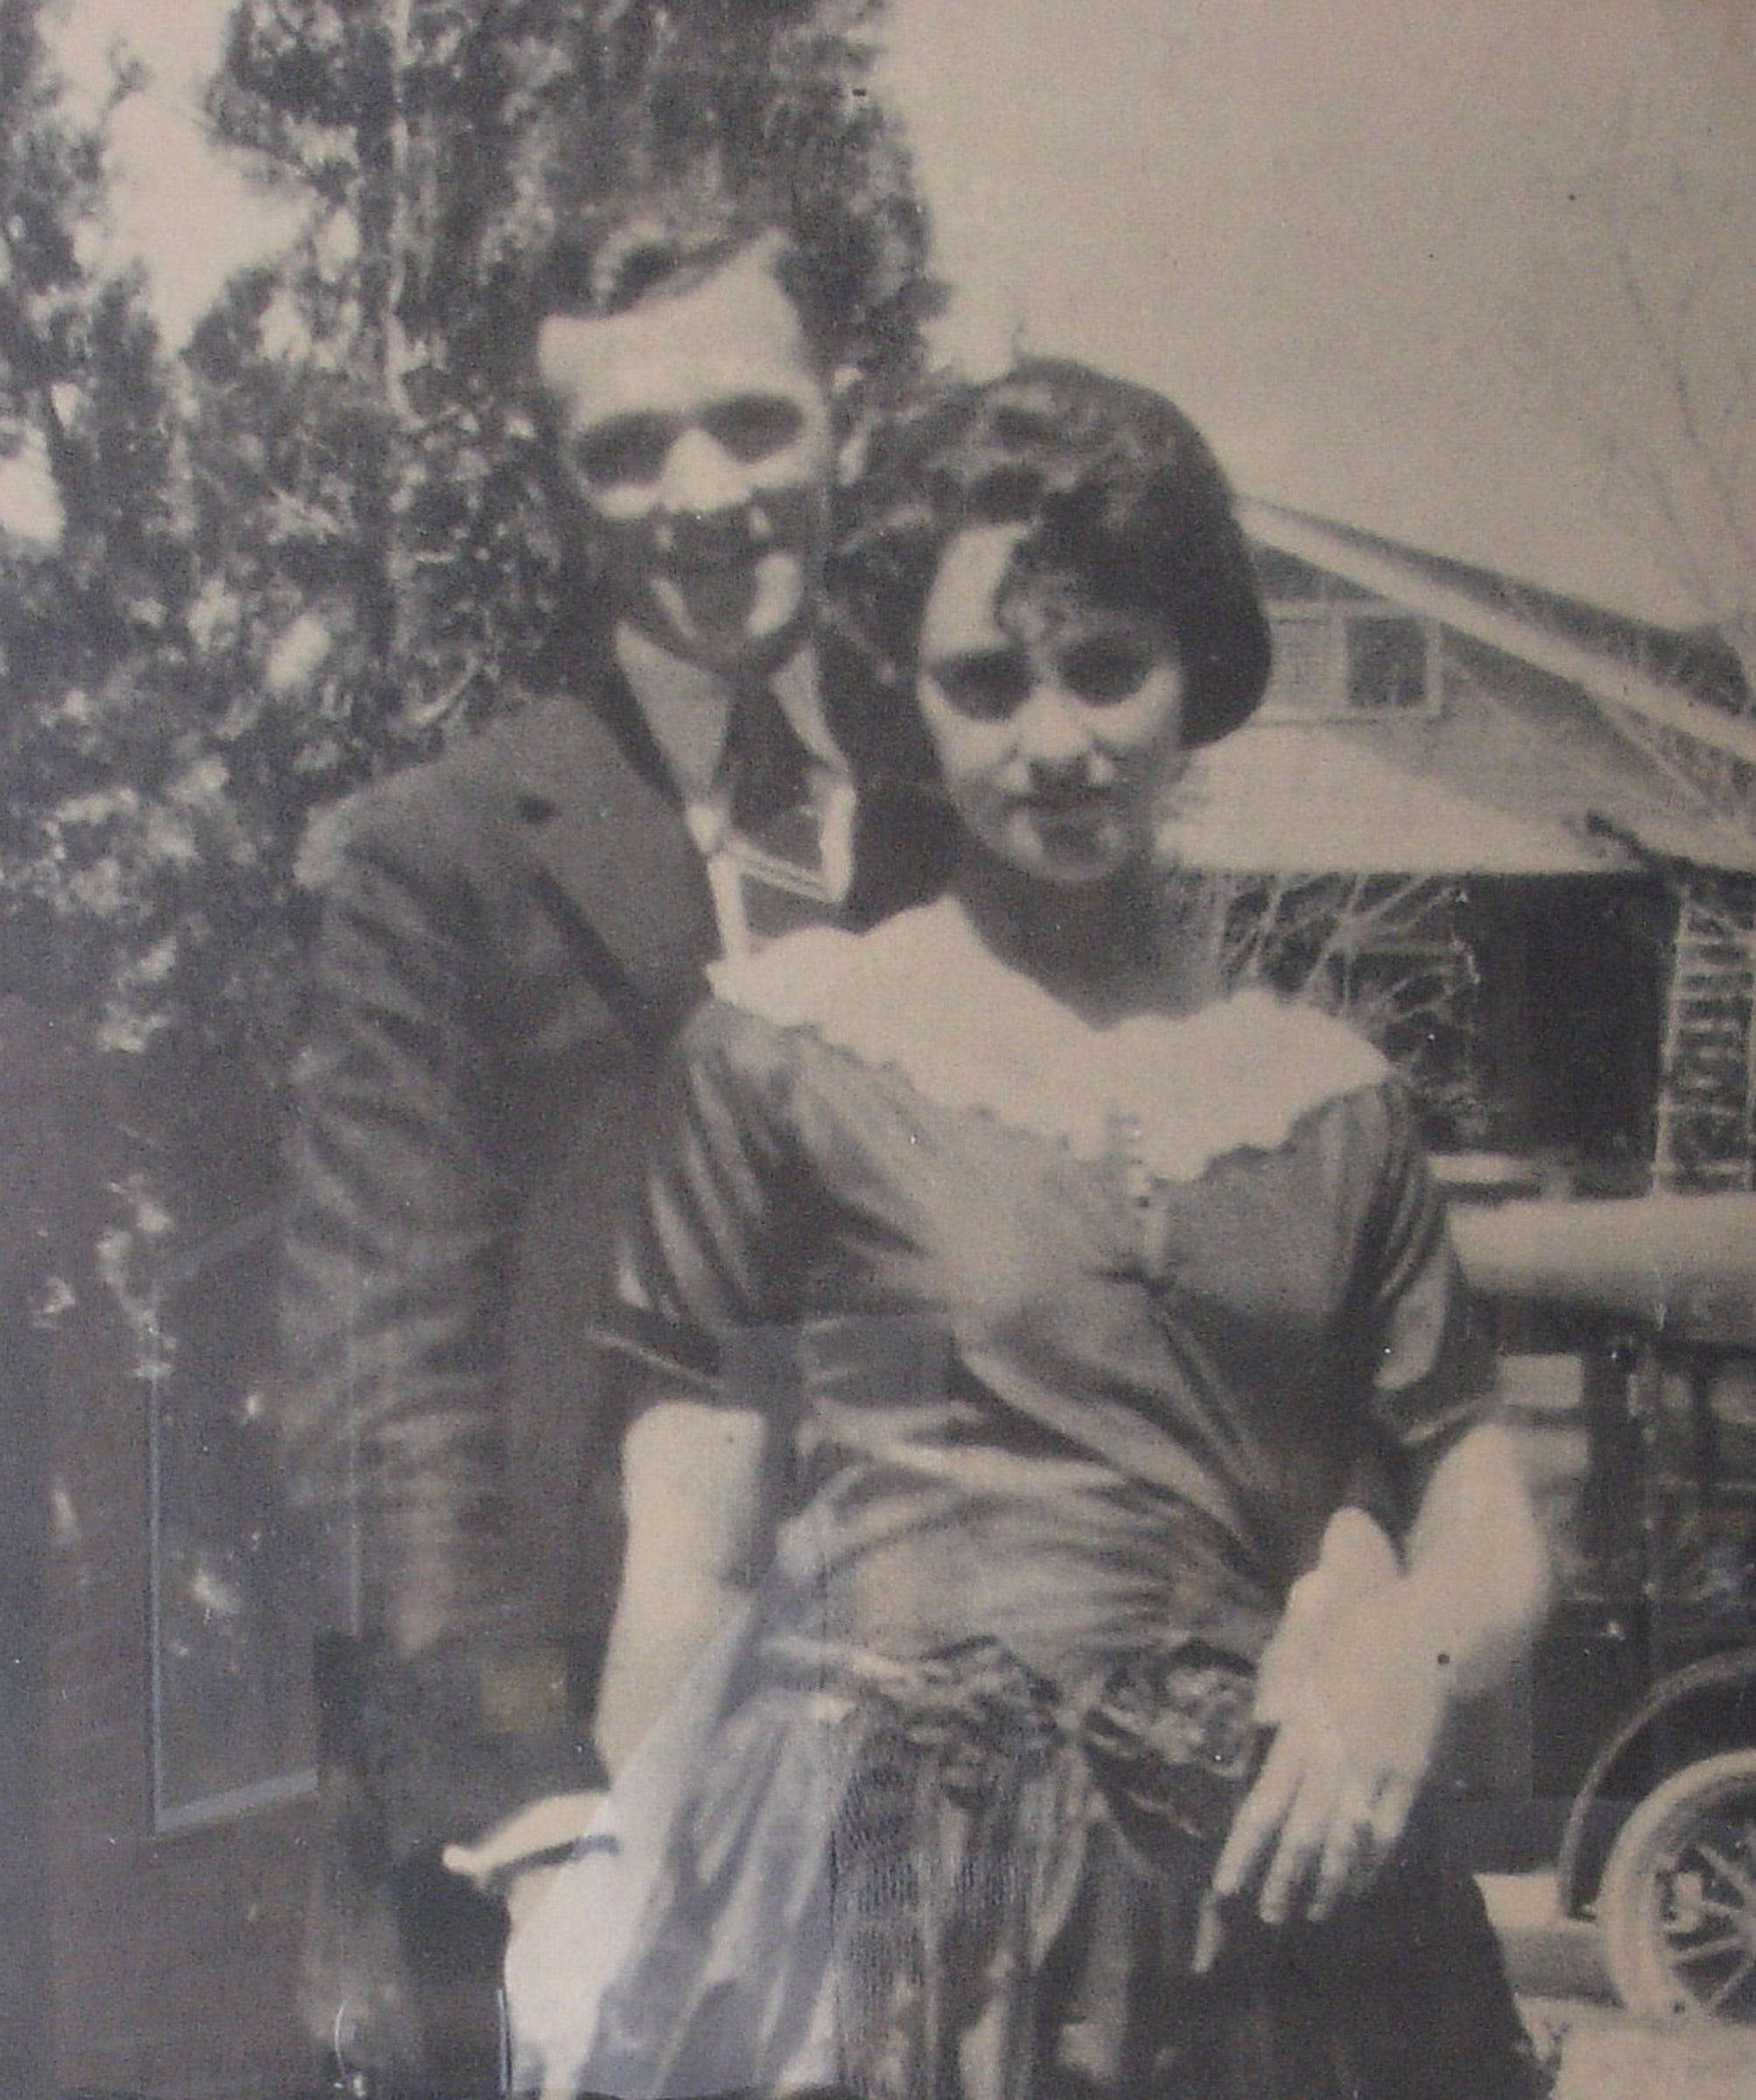 An undated photo of Charlie and Pearl Bracker.